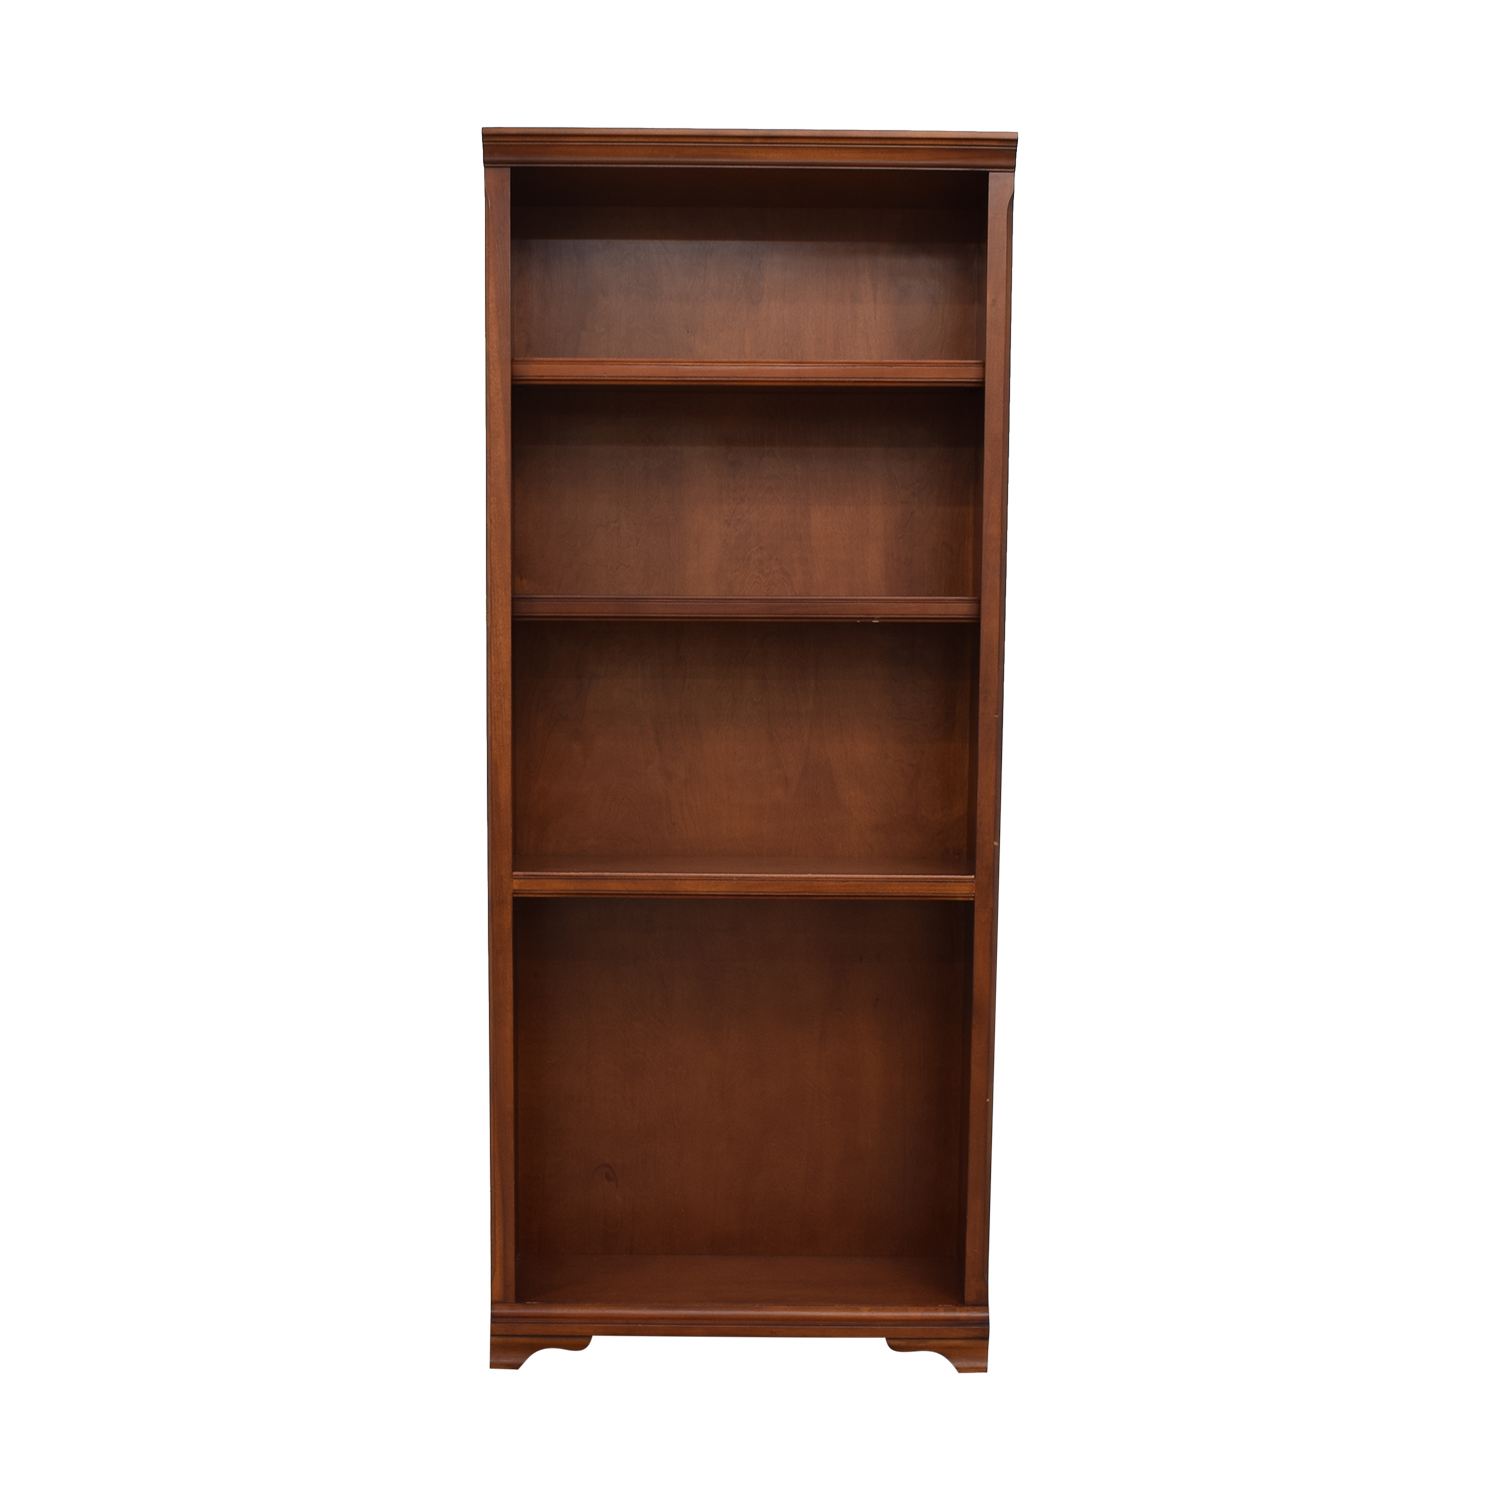 buy Raymour & Flanigan Raymour & Flanigan Bookcase online